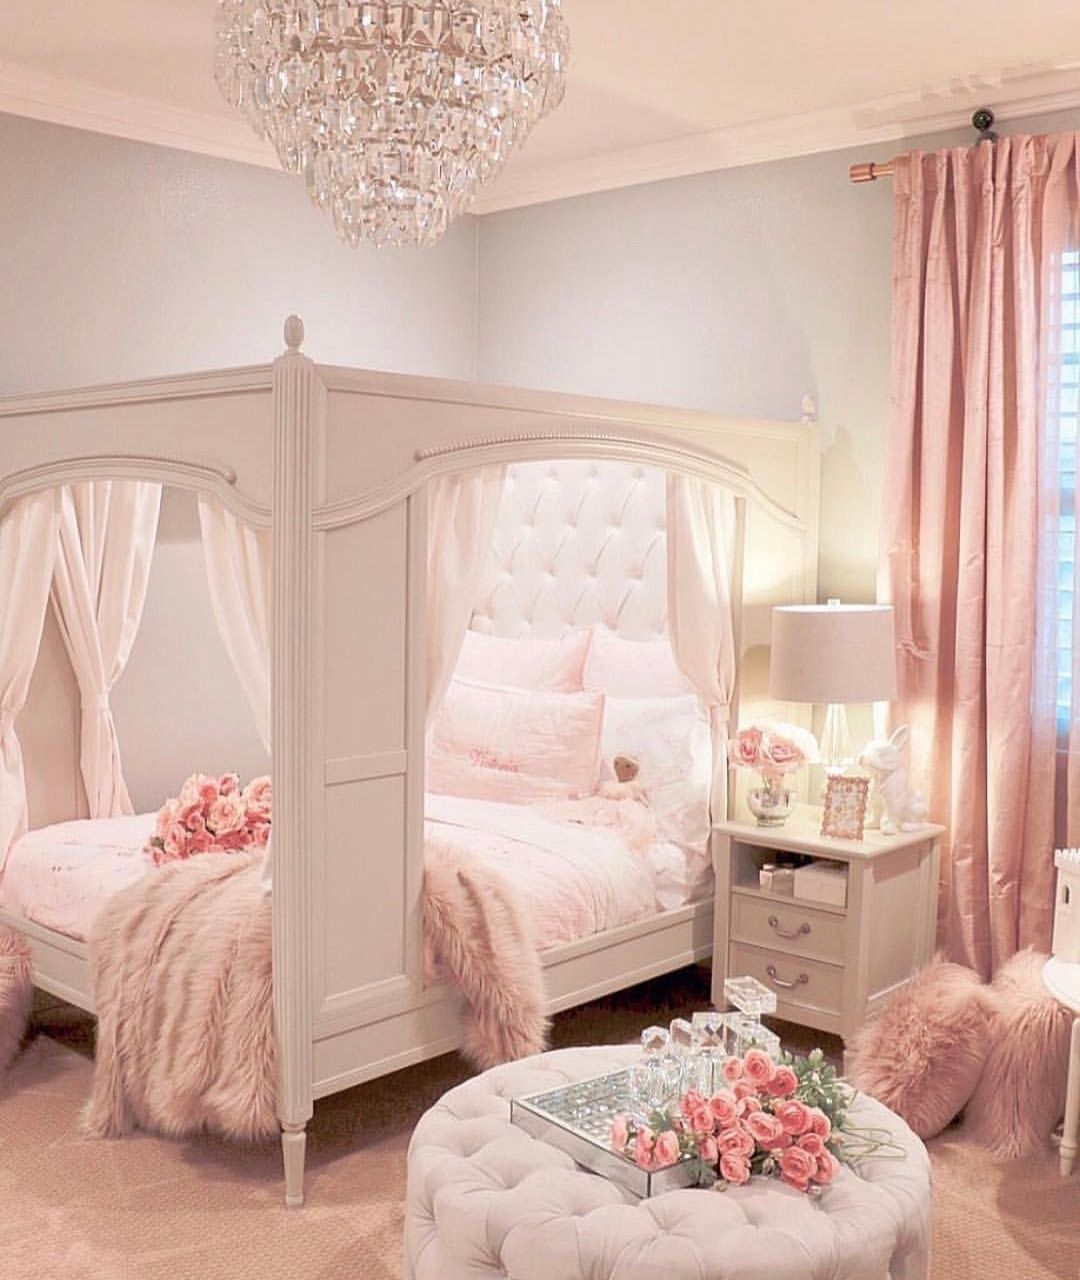 Girly Bedroom Ideas Click To Get Inspired By Circu Exclusive And Unique Furniture Collections For Girl Bedroom Designs Cute Bedroom Ideas Girl Bedroom Decor